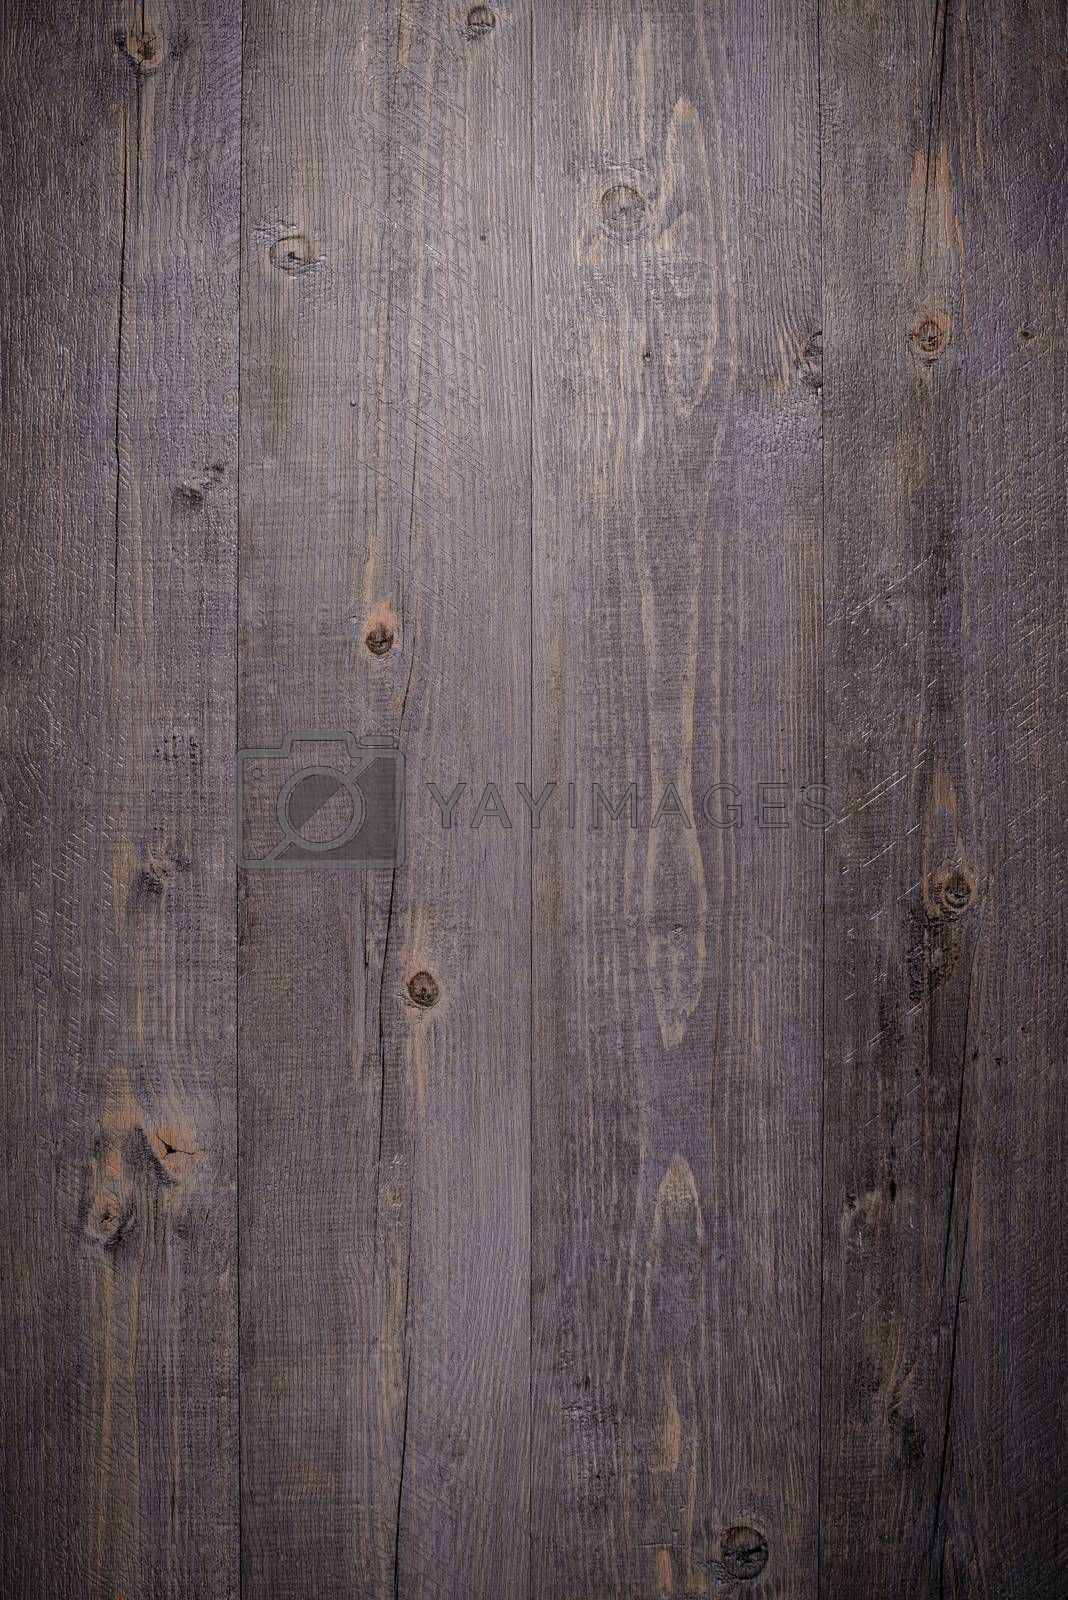 Royalty free image of Wood texture background  by homydesign